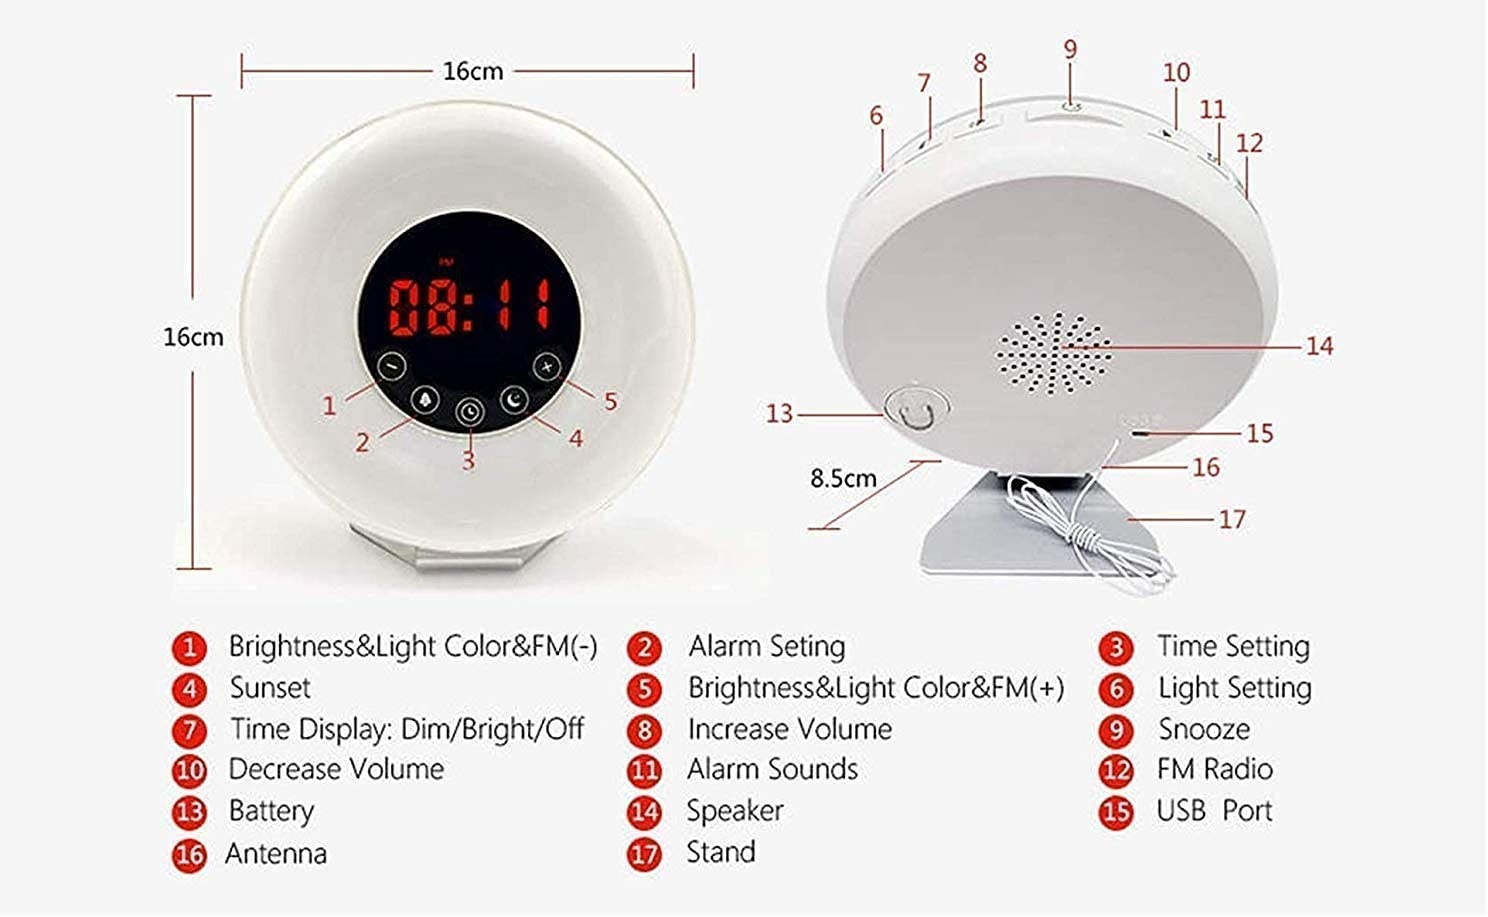 Wake Up Light//Sunrise Alarm Clock Upgraded Table Bedside Lamp Night Light with FM Radio 7 Colors LED Display Touch Control Function Nature Sounds for Heavy Sleeper Kids Bedroom Gift